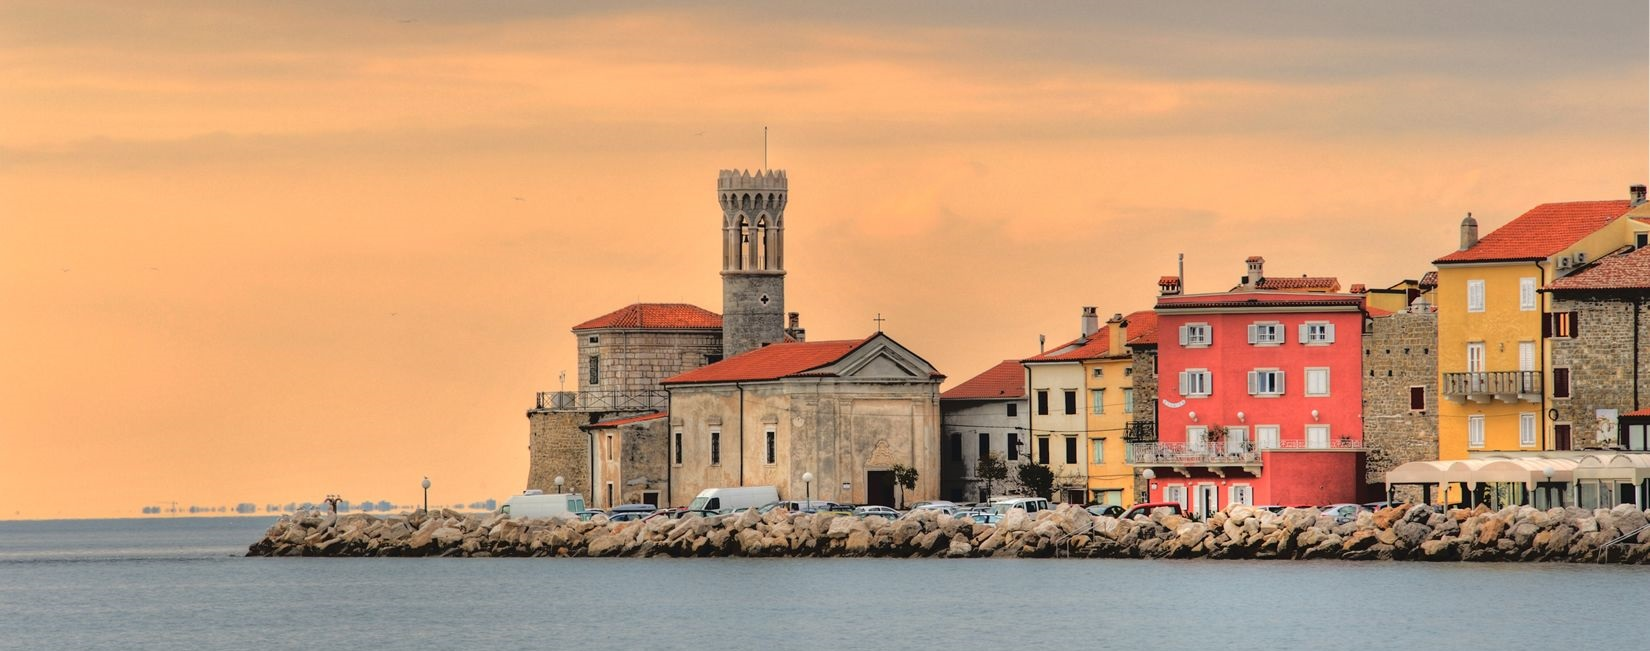 piran-panoramic-slovenian-coast